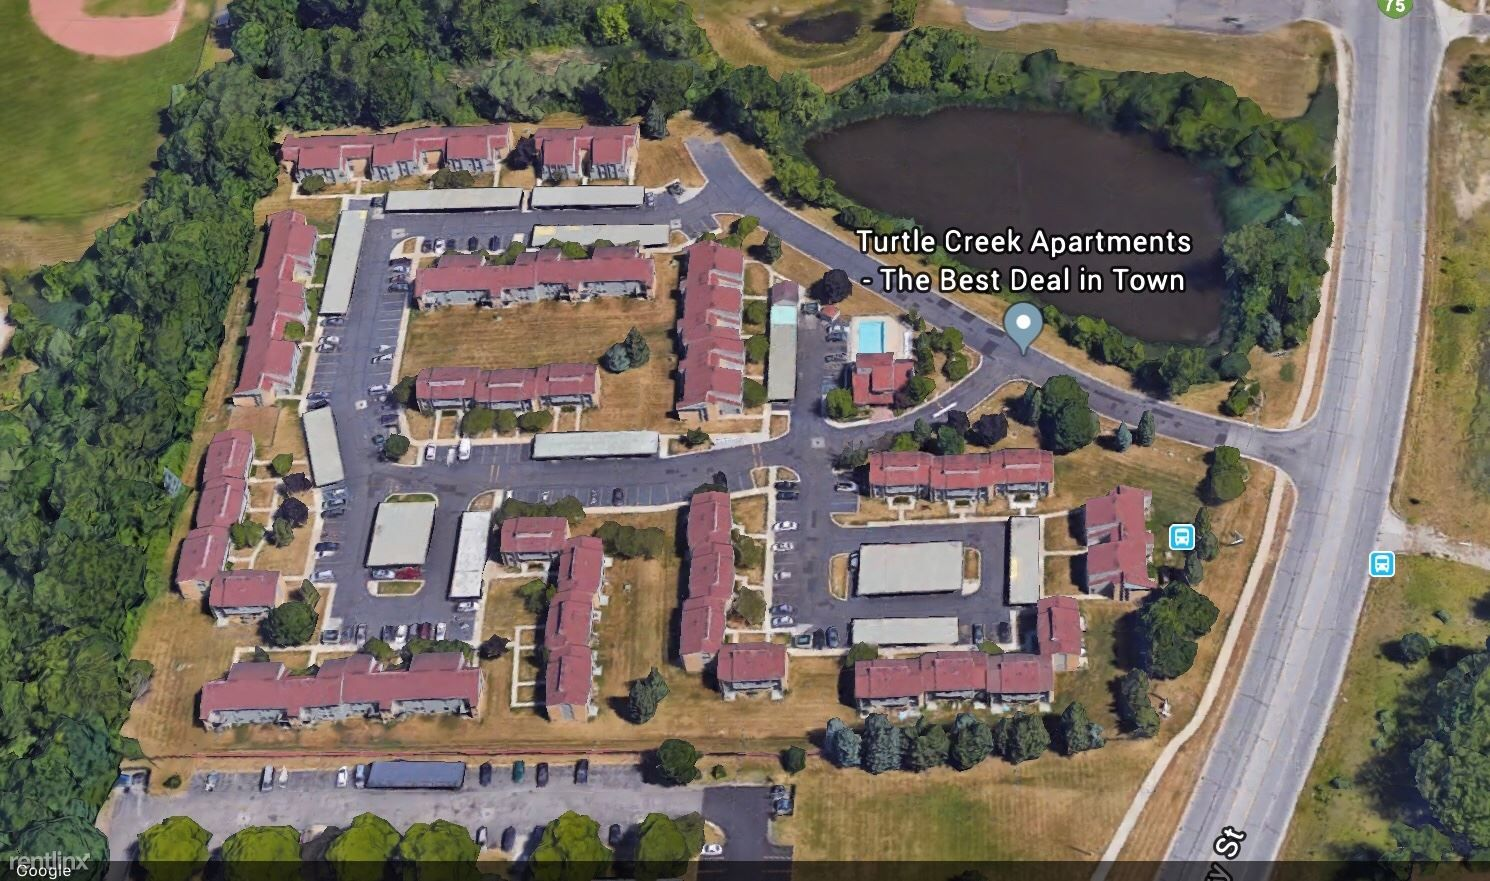 Turtle Creek Apartments for rent